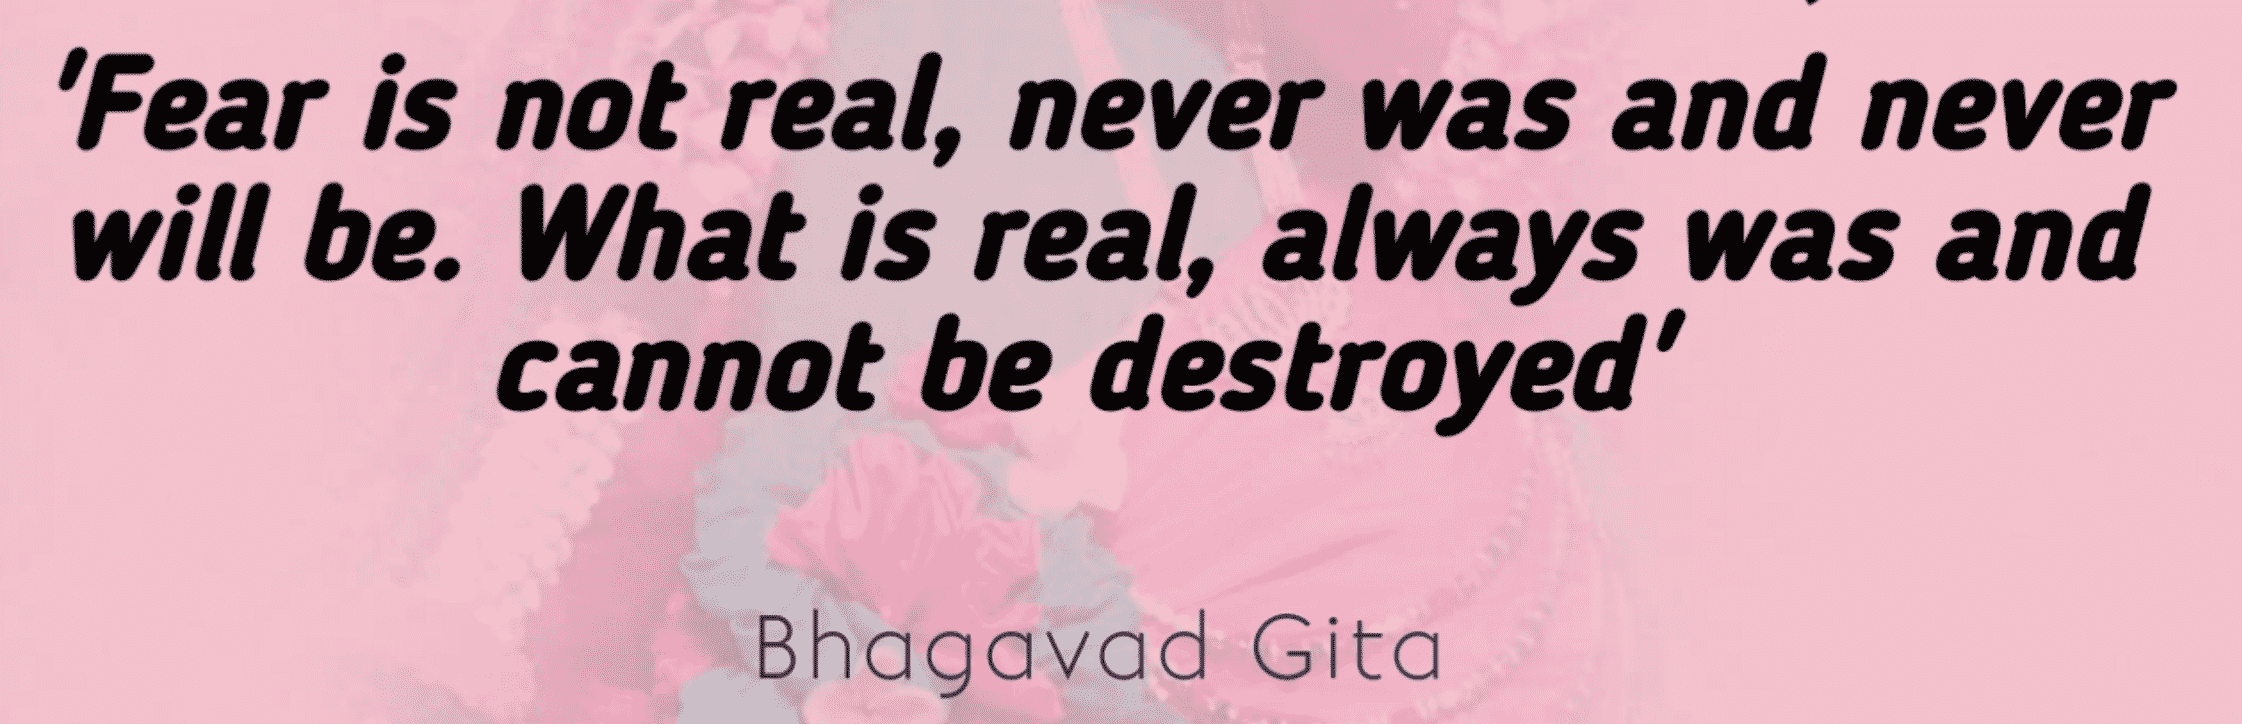 Some Quotes from the Bhagavad Gita